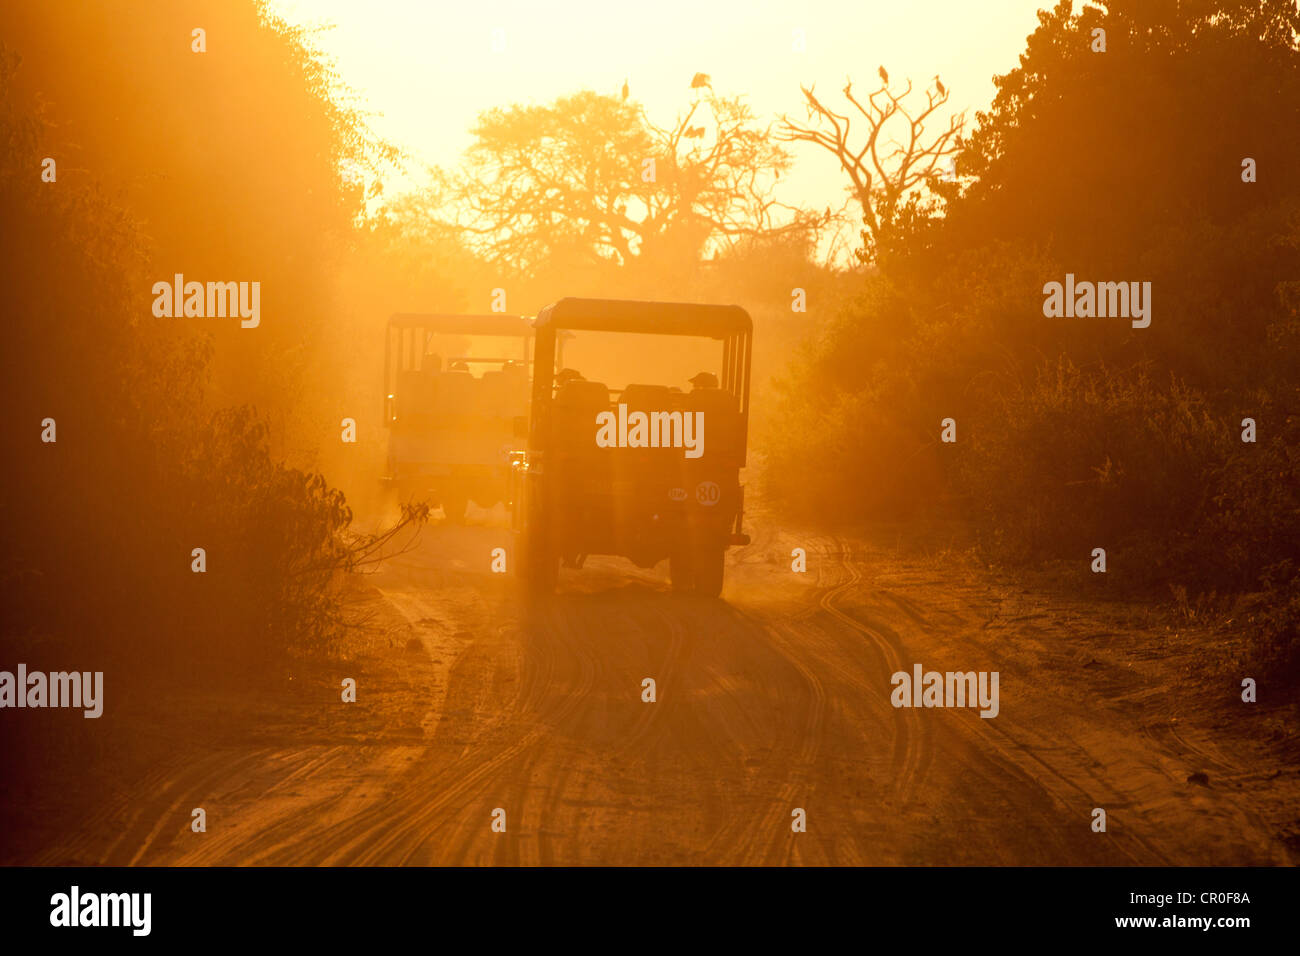 Jeep driving in the road in a Safari - Stock Image